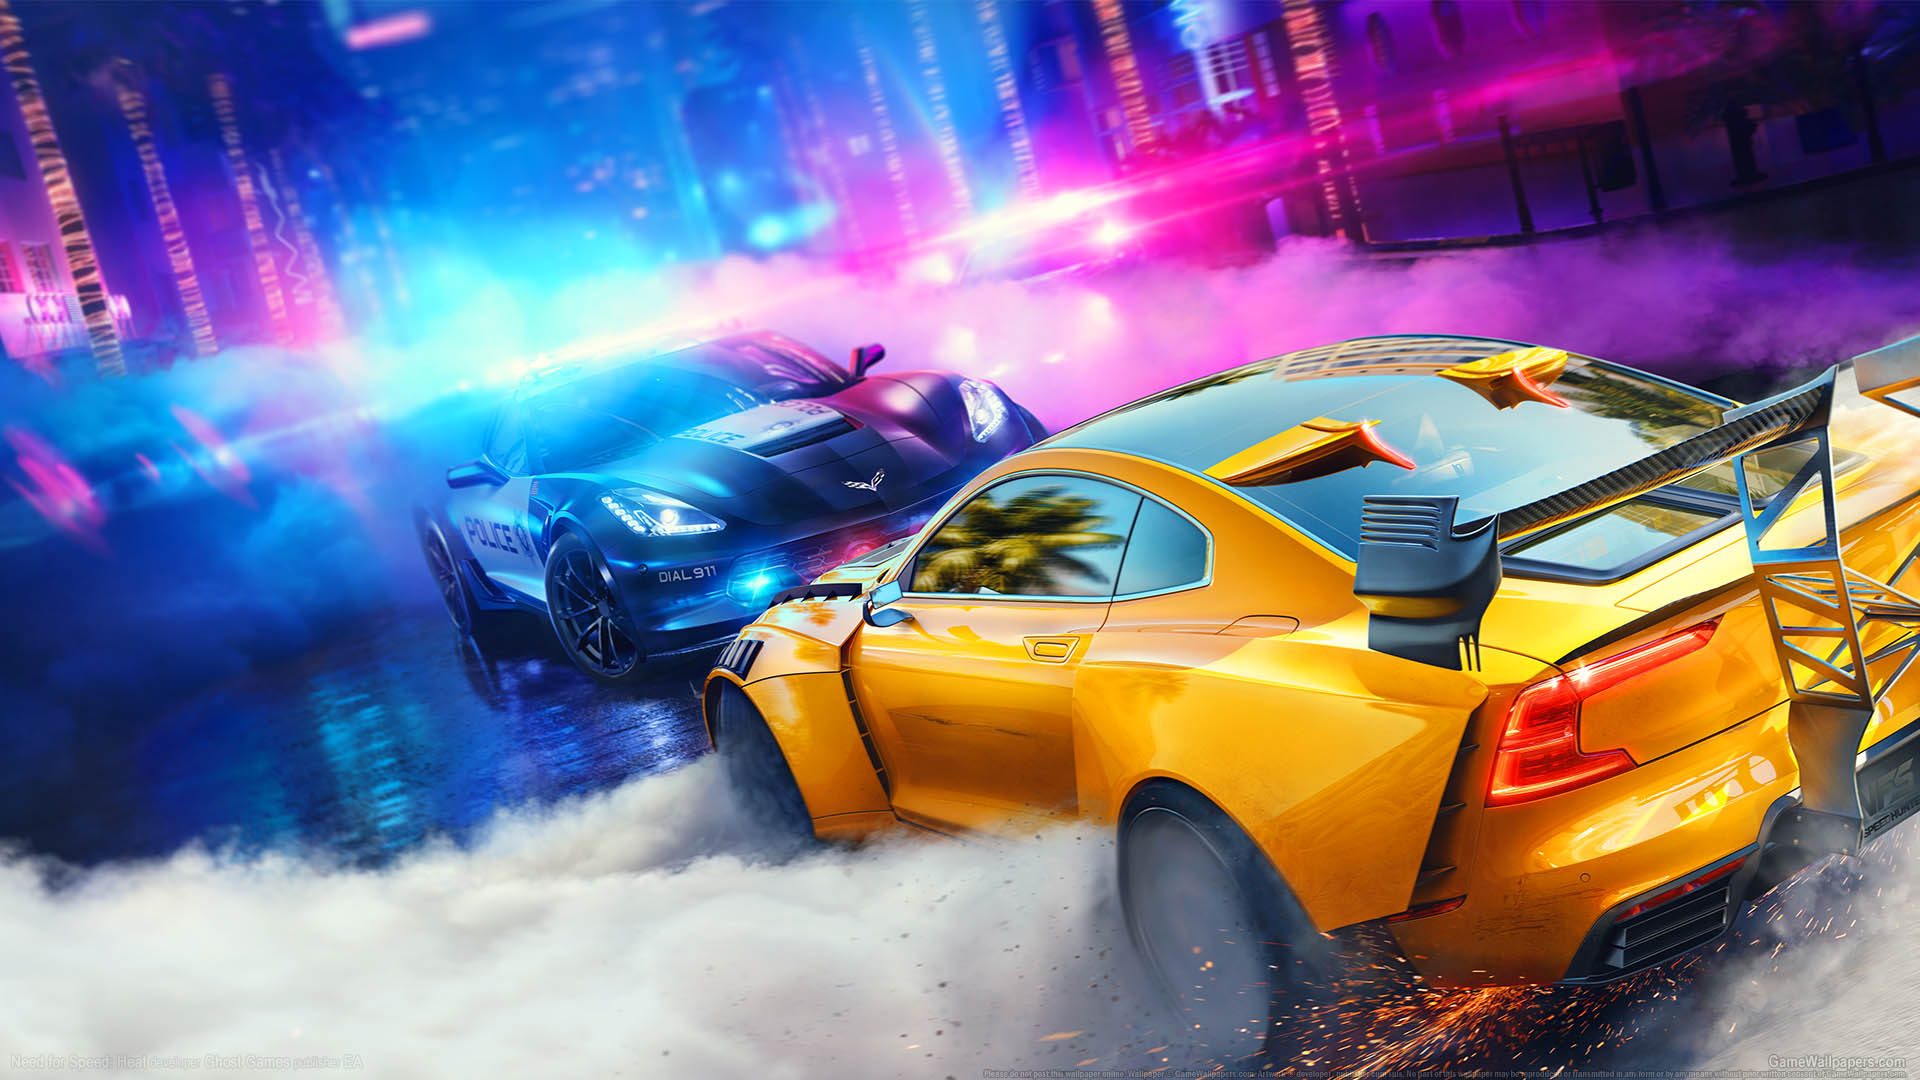 Need for Speed: Heat wallpaper 01 1920x1080